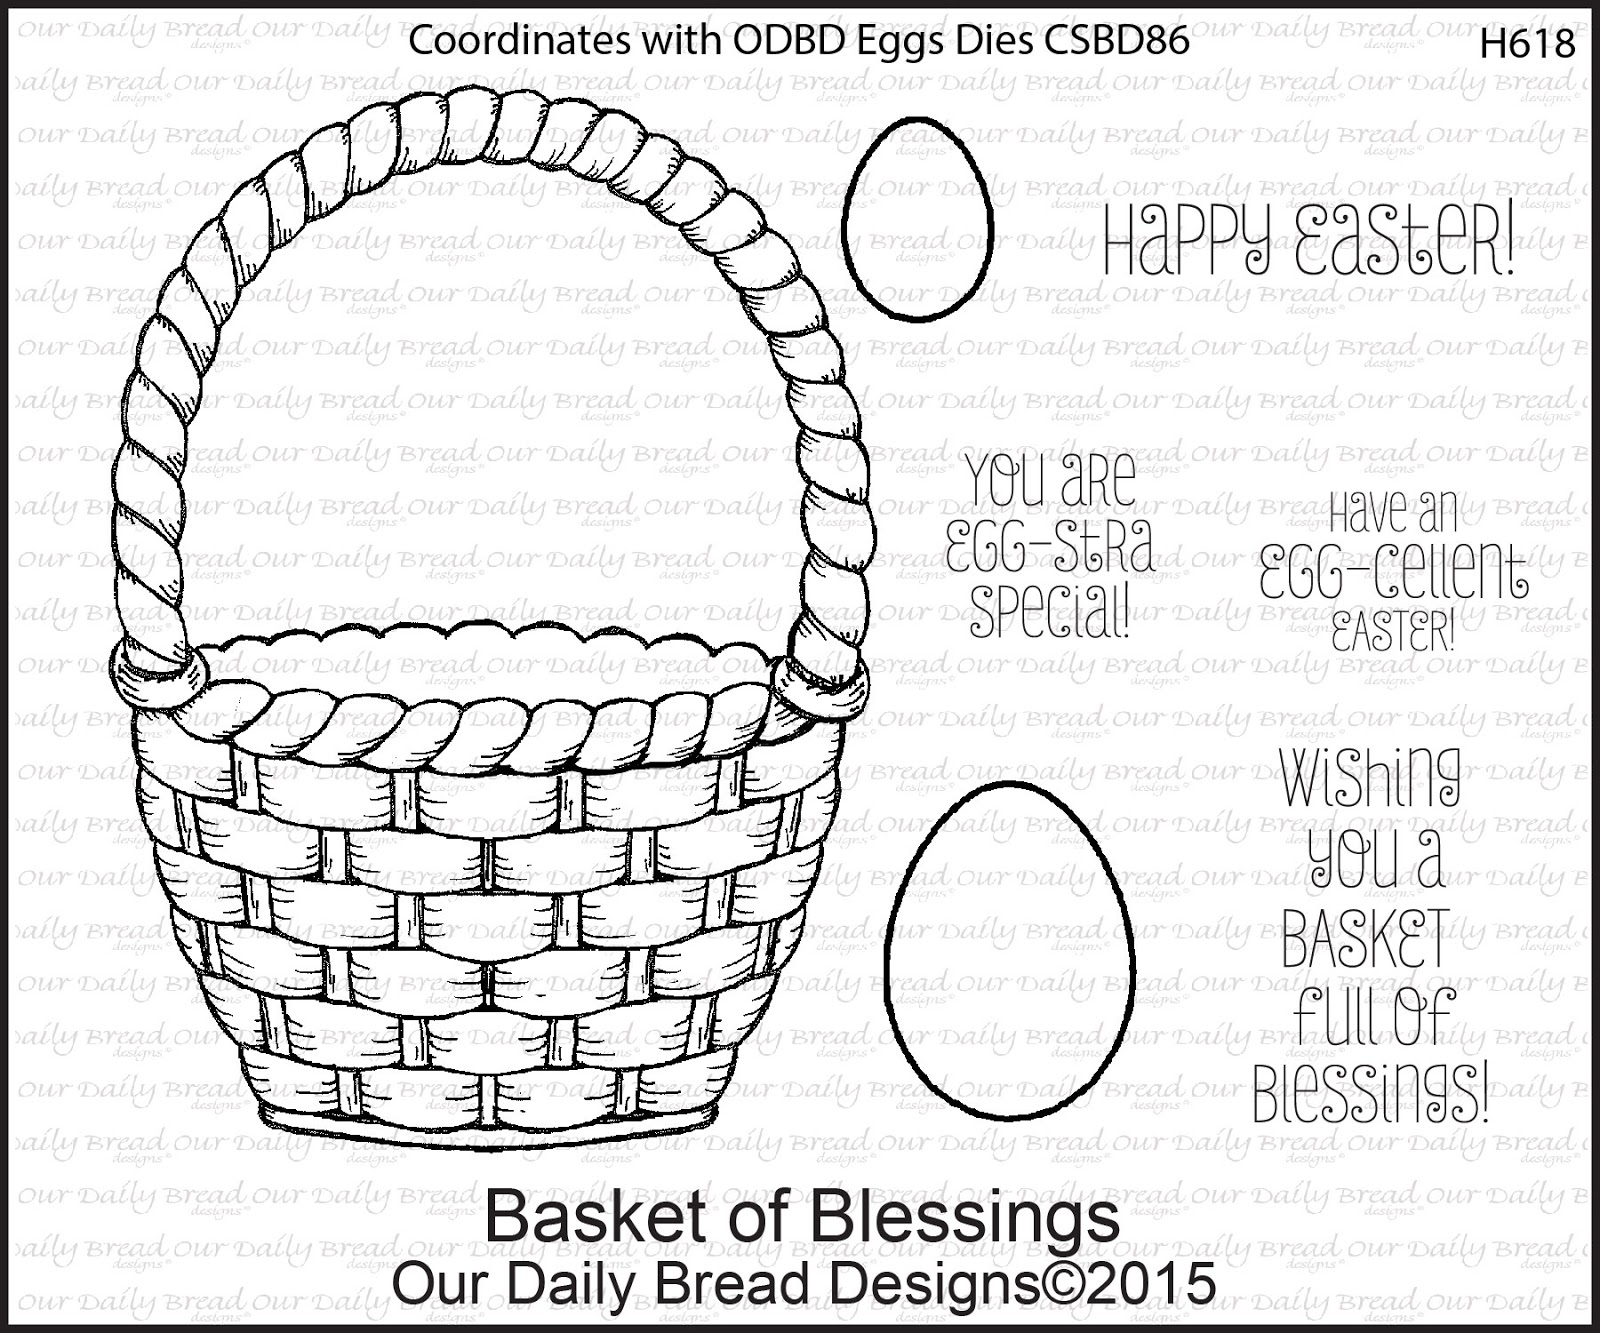 https://www.ourdailybreaddesigns.com/index.php/h618-basket-of-blessings.html